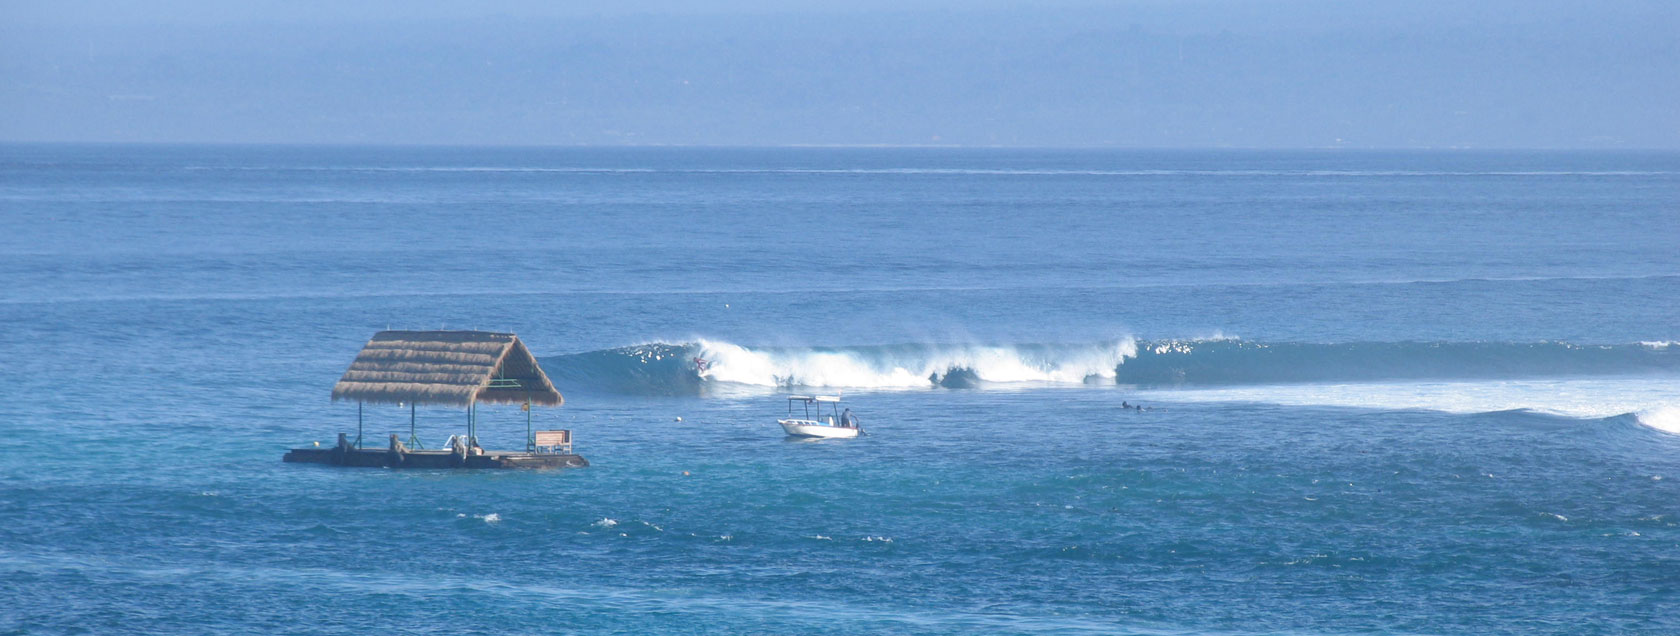 Lacerations - Surfing Lembongan